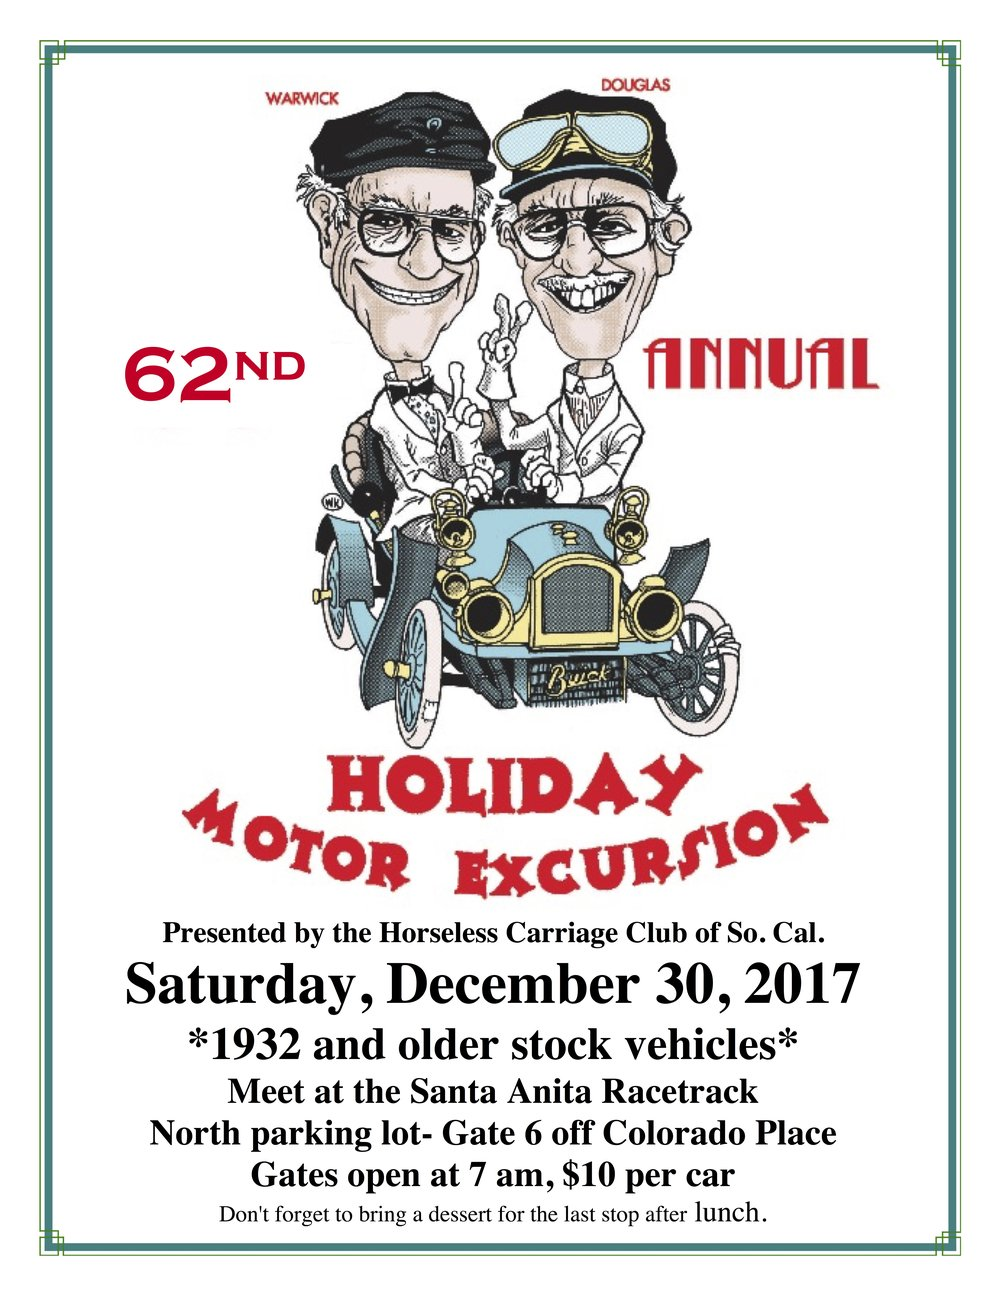 62nd Holiday Motor Excursion.jpg